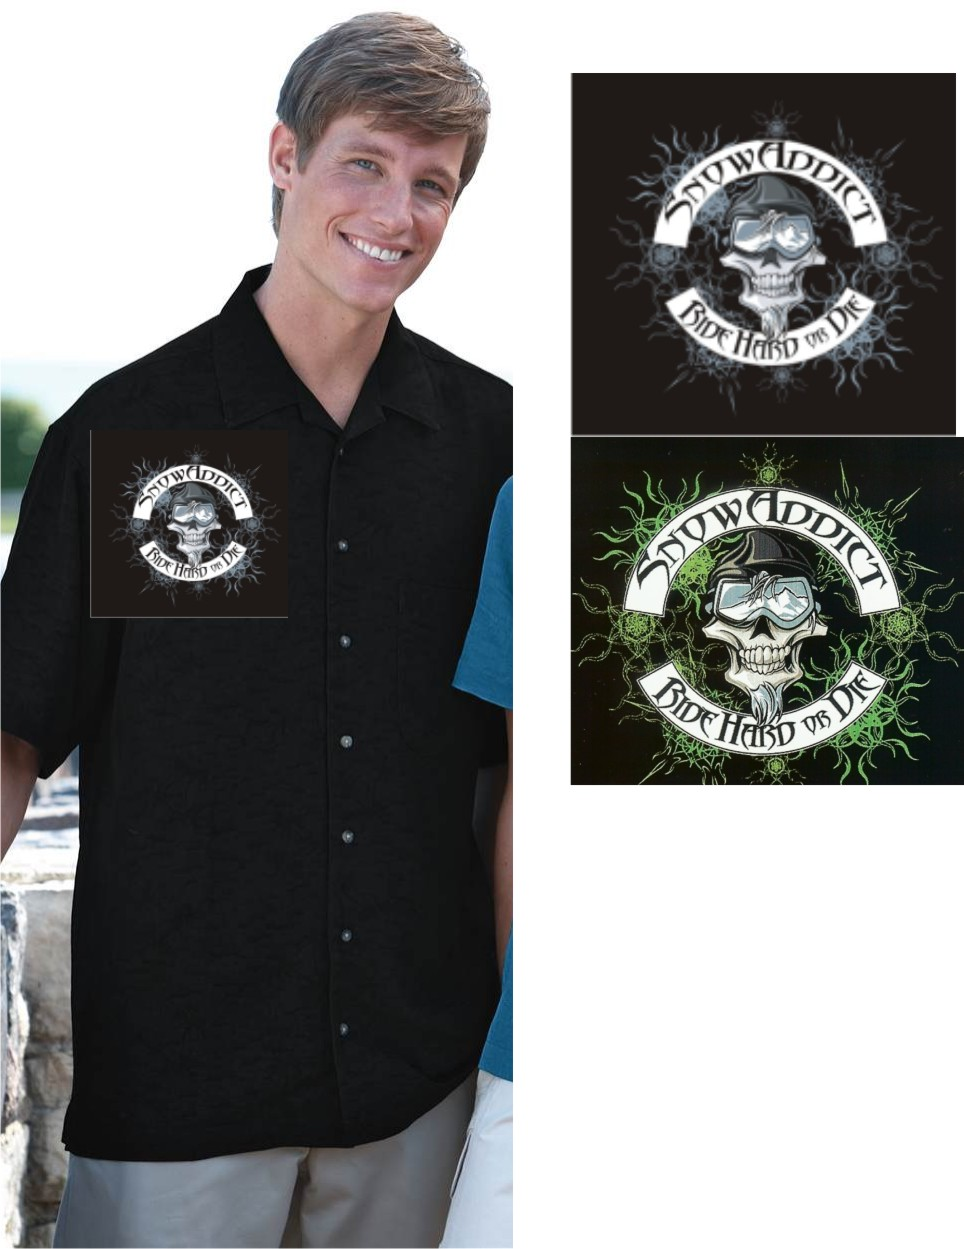 SnowAddiction Shop Shirt - click here to purchase